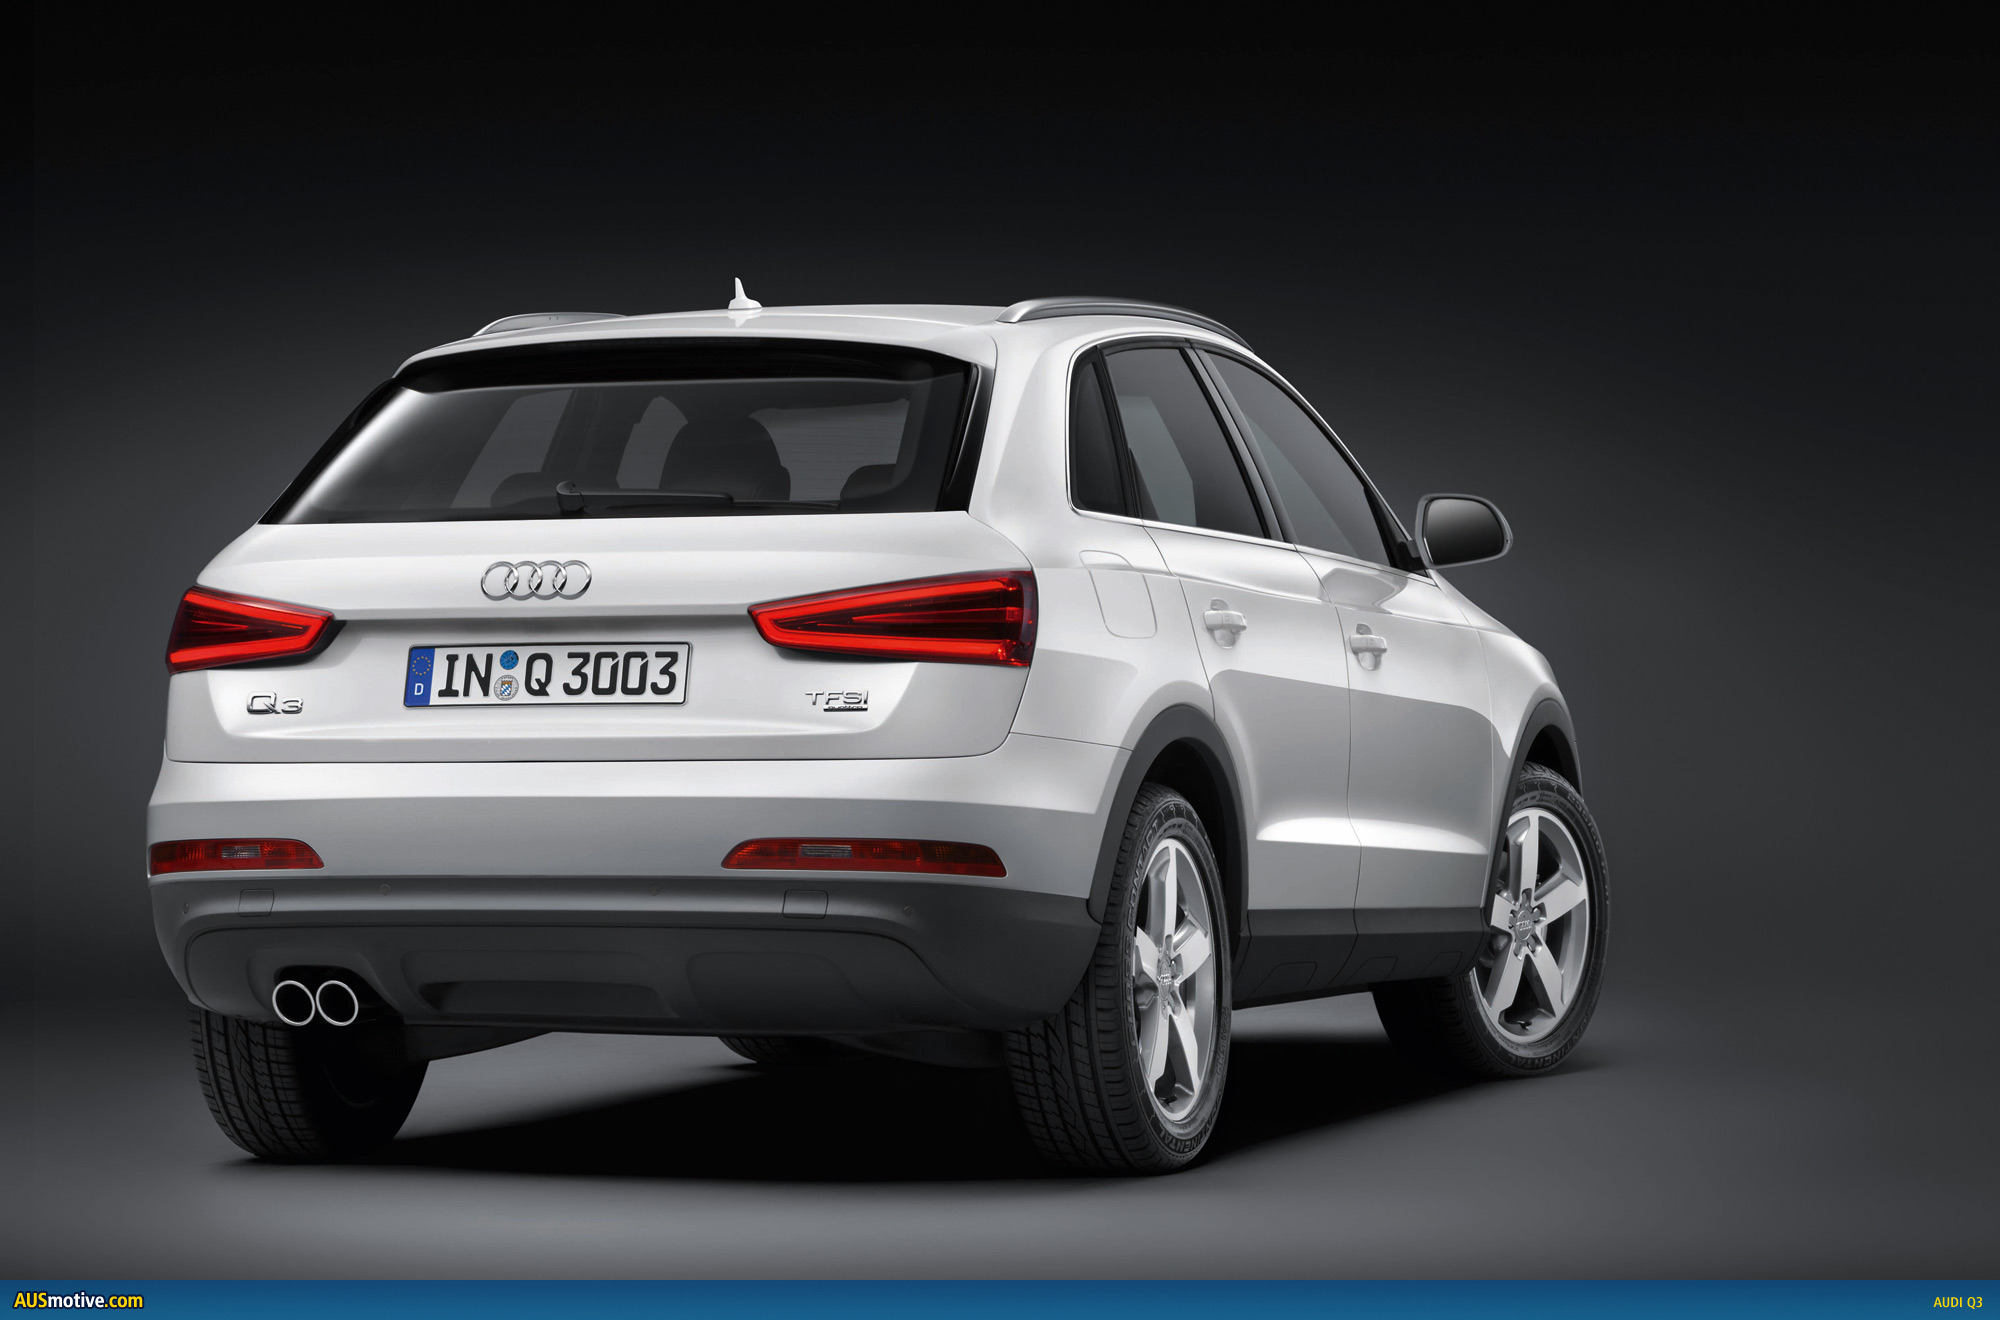 AUSmotive.com » 2012 Audi Q3 Photo Gallery